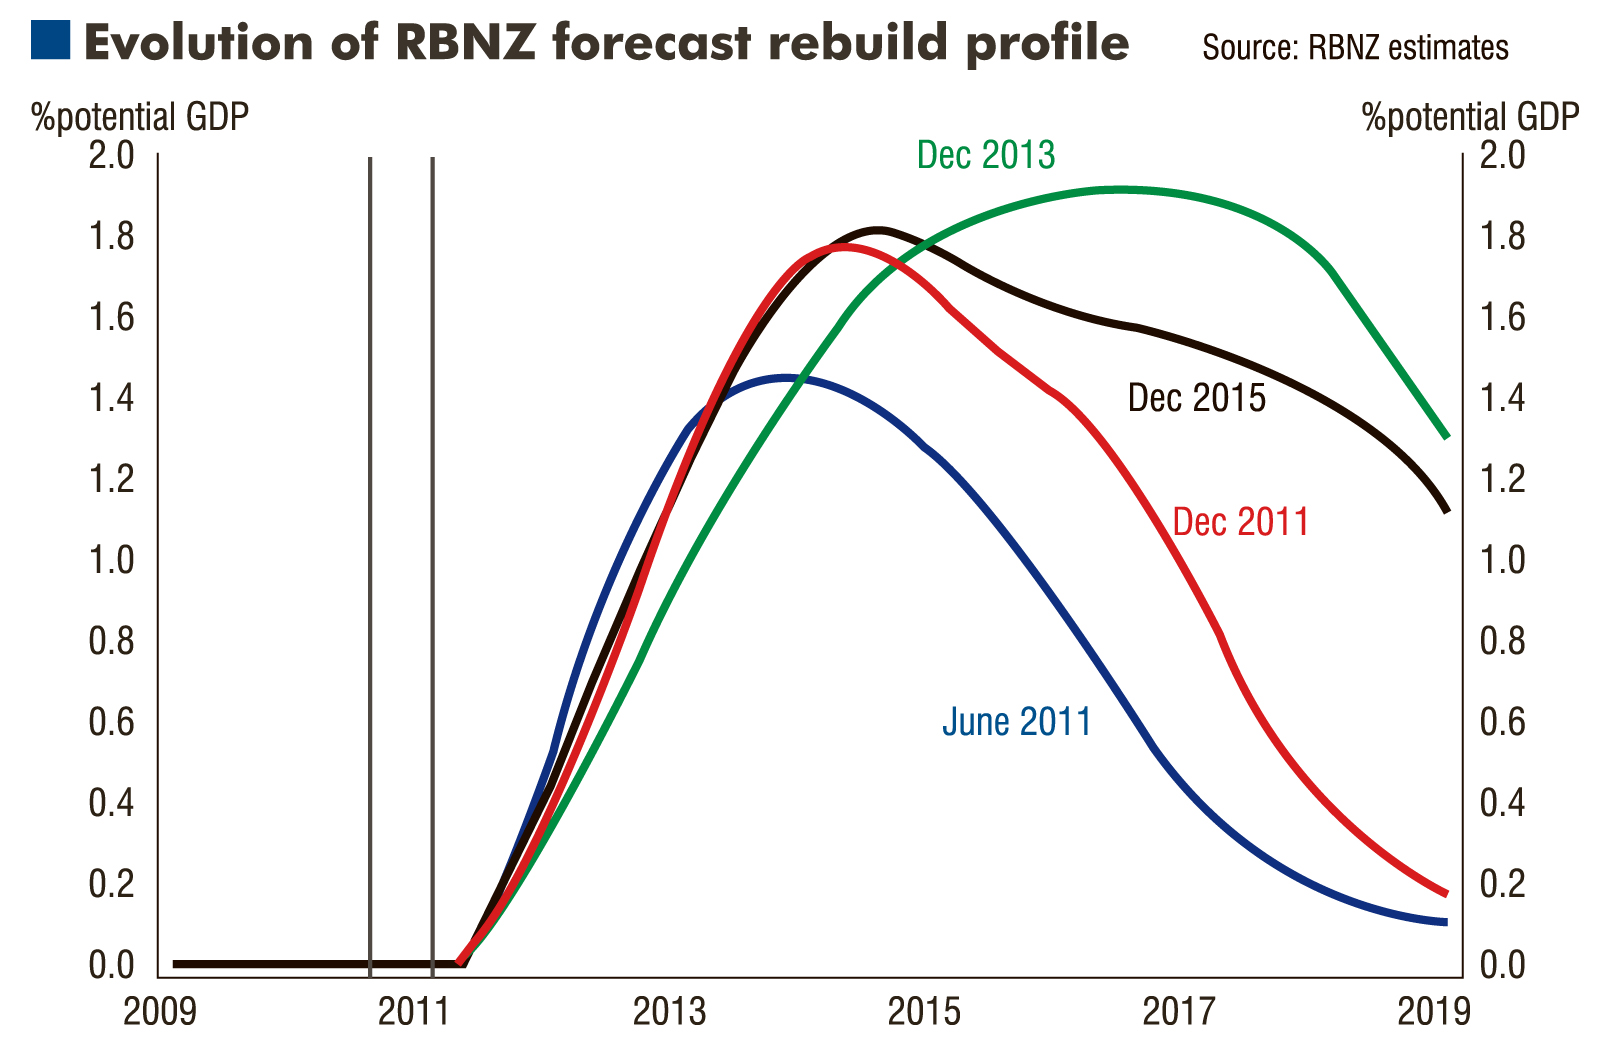 The surging replacement cost resulting from natural disasters, such as the Christchurch...